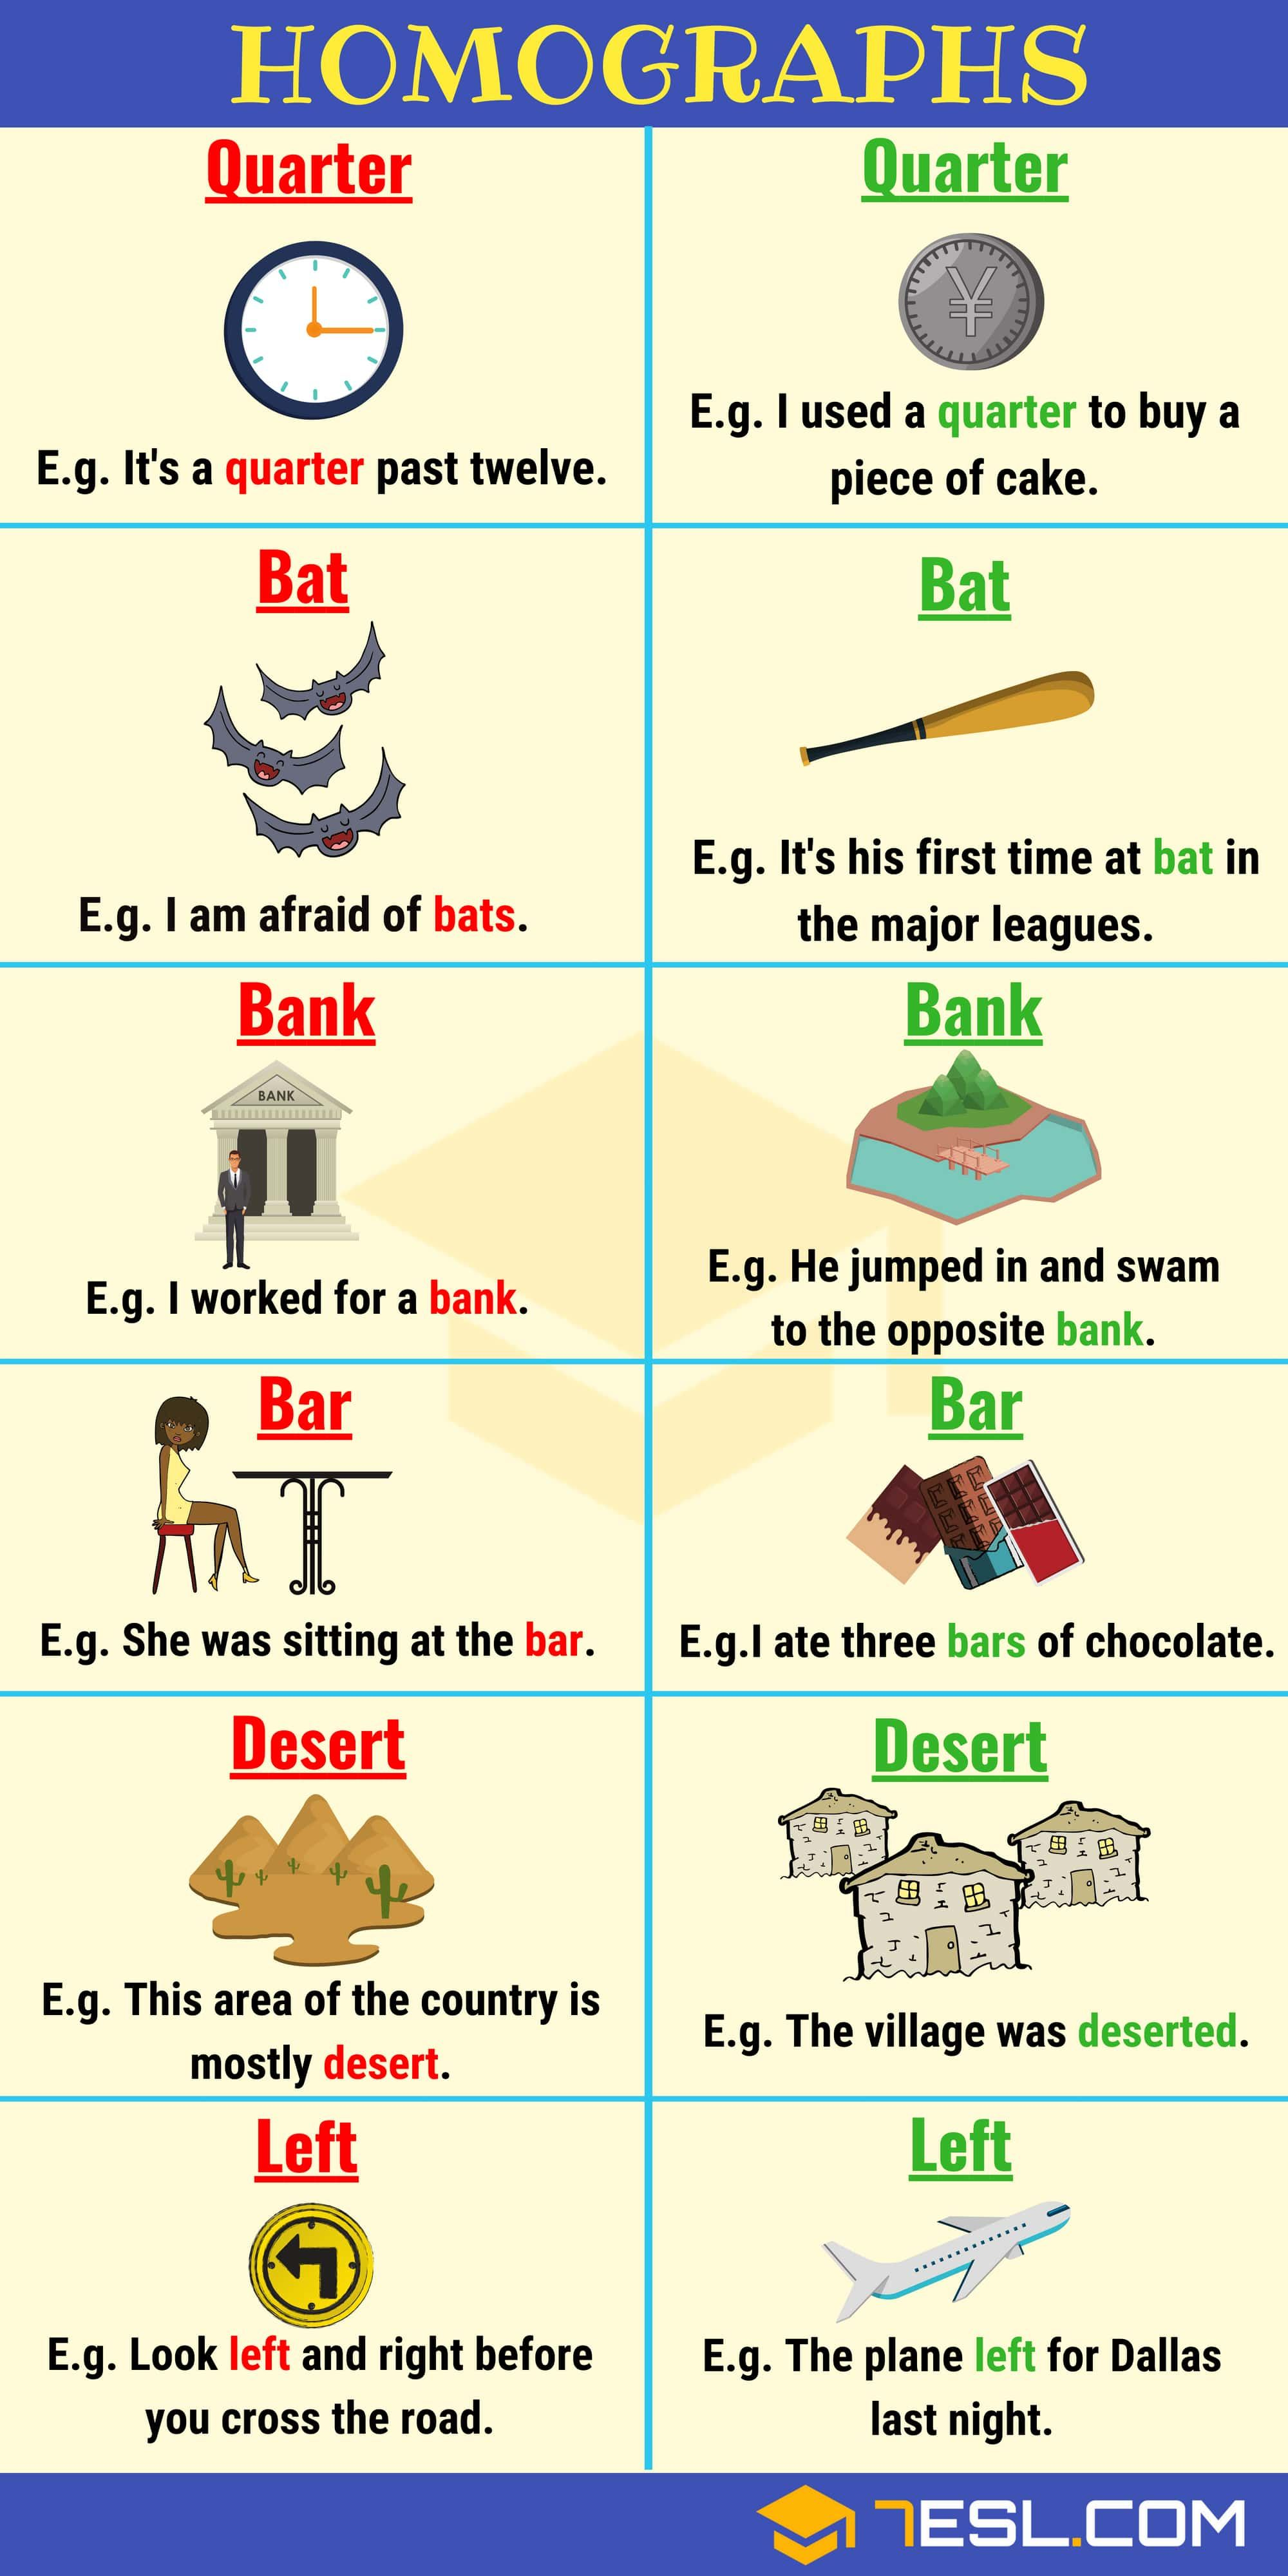 List Of 150 Common Homographs In English With Examples Pinterest